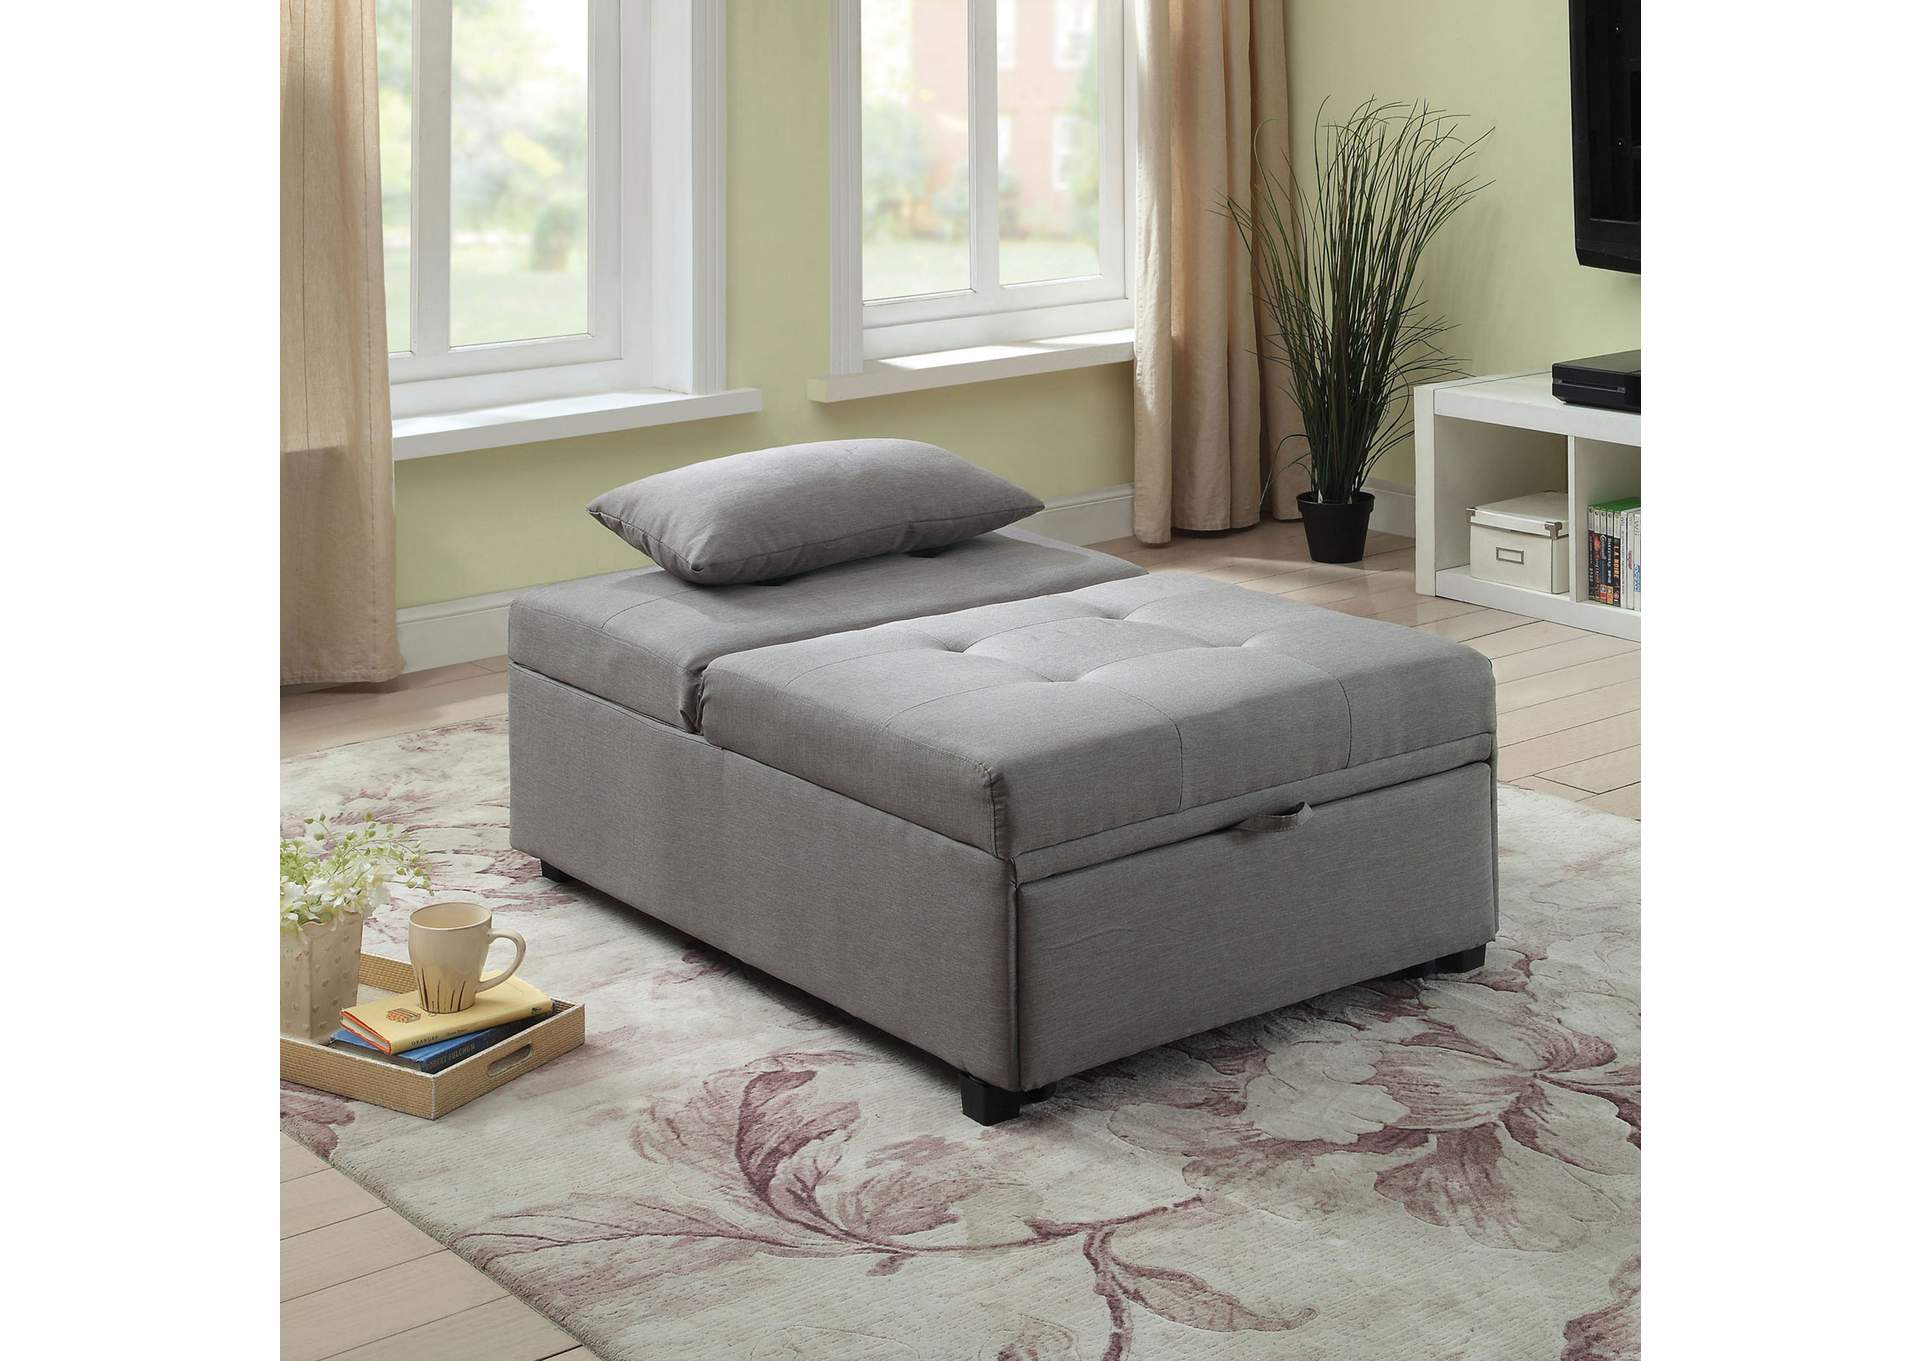 Oona Futon Sofa,Furniture of America